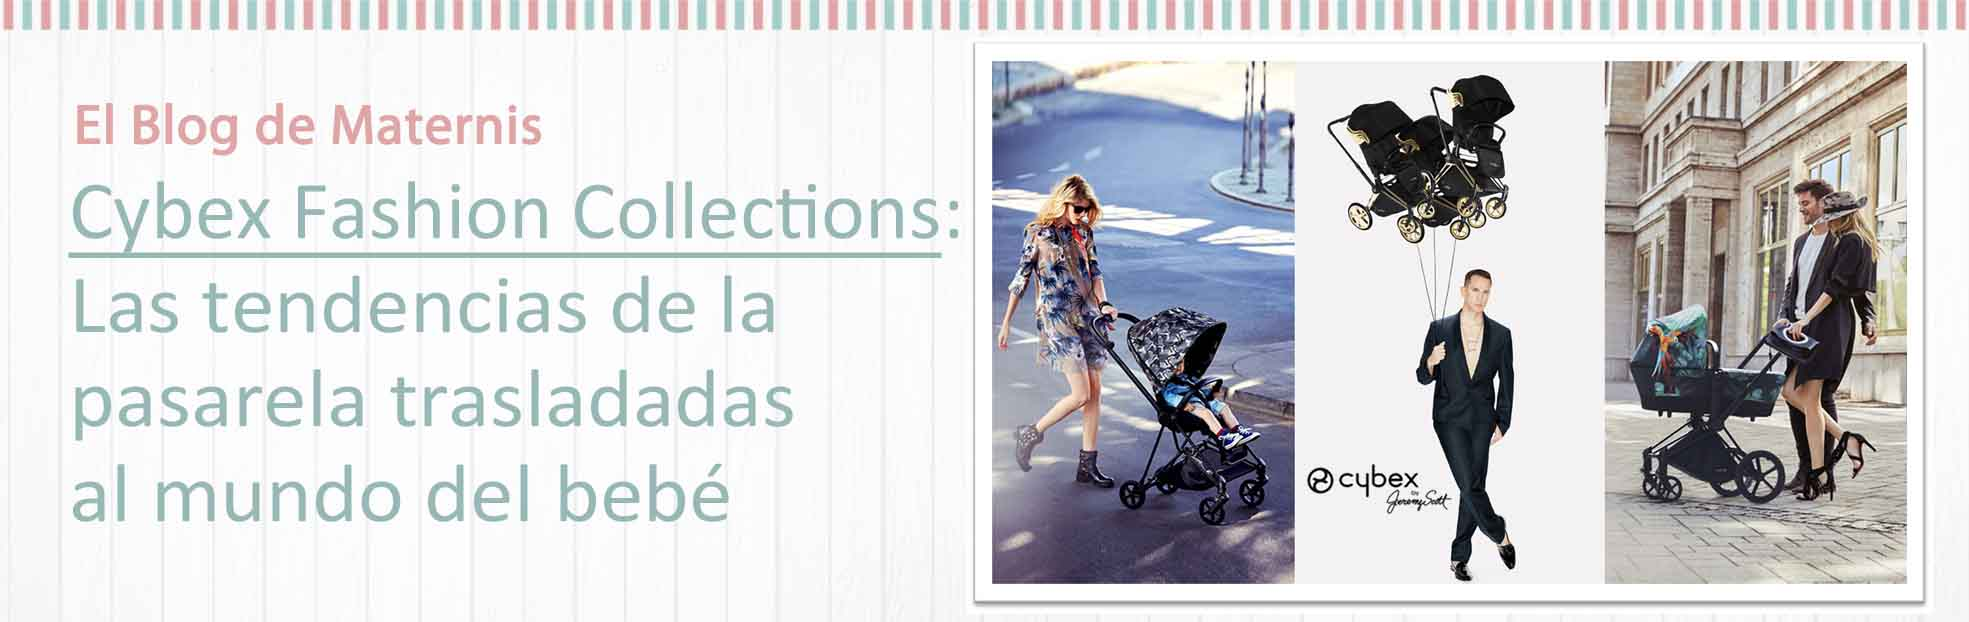 Cybex Fashion Collections Maternis bebé